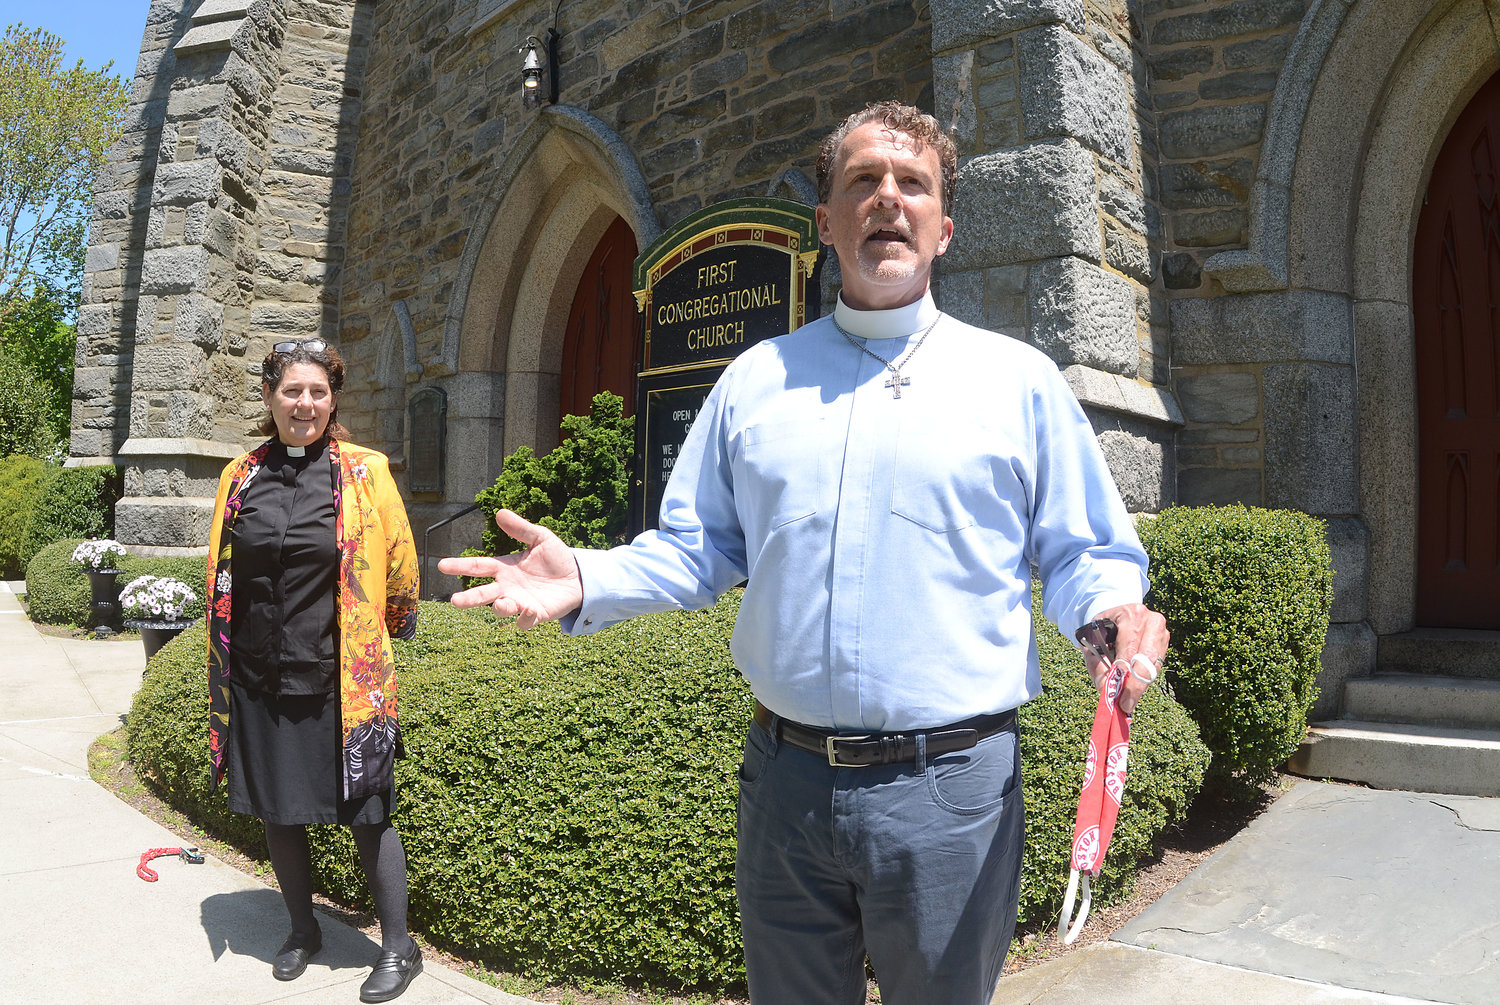 Pastor Burton Bagby-Grose (foreground) with pastor for youth and missions Hilary McLellan will be keeping the doors of the First Congregational Church closed to in-person worship, for now.